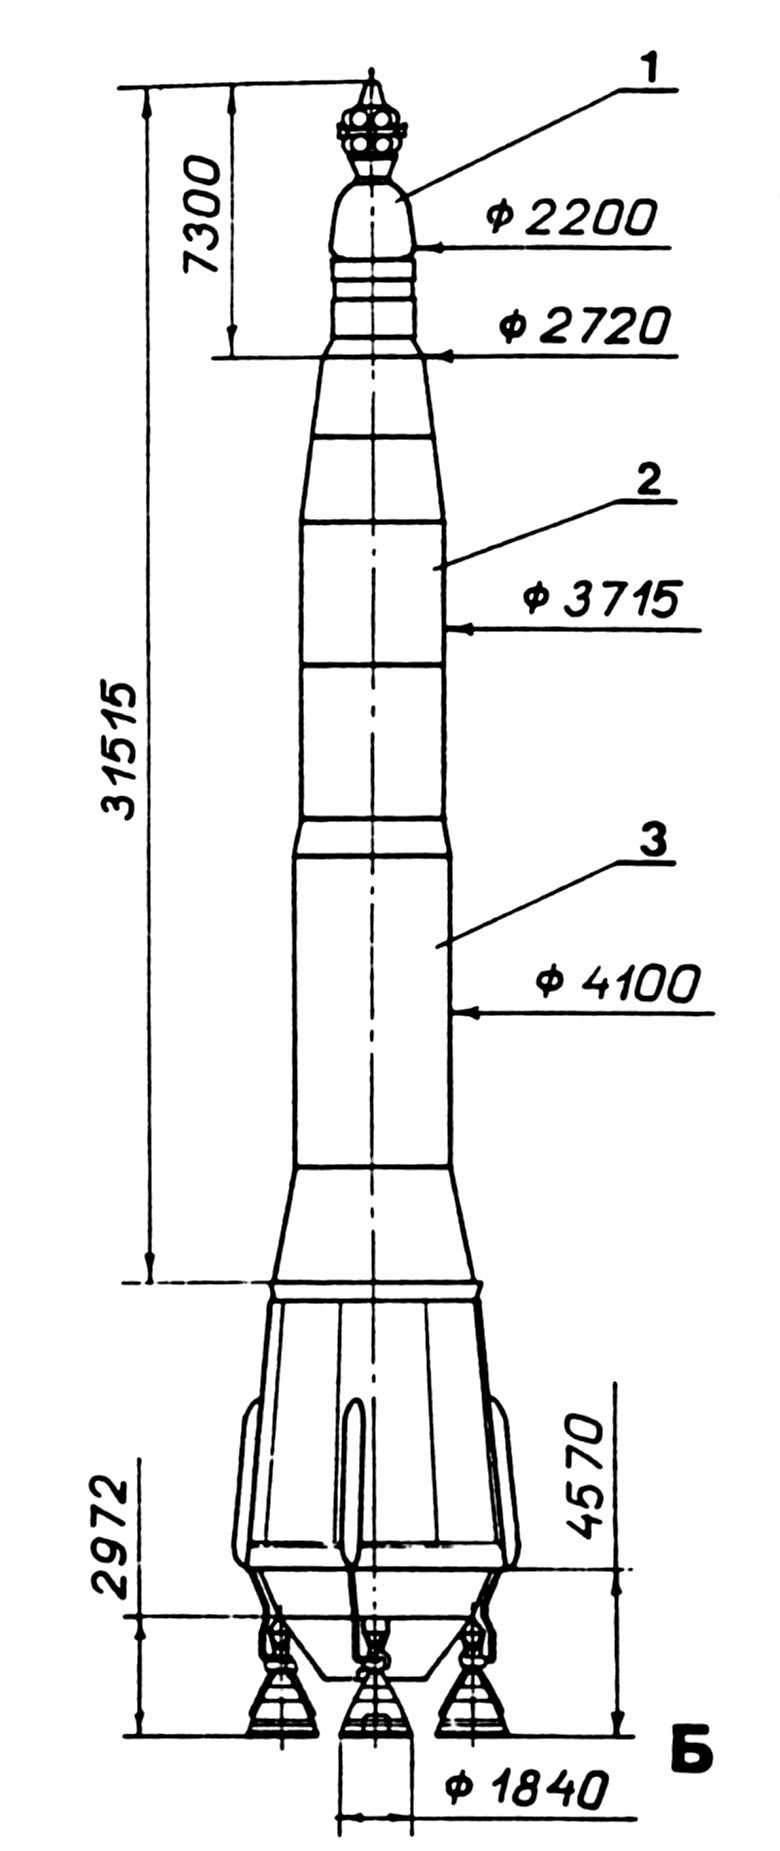 hight resolution of models of the n1 l3 rocket can be found on the web here are some links to n1 l3 models